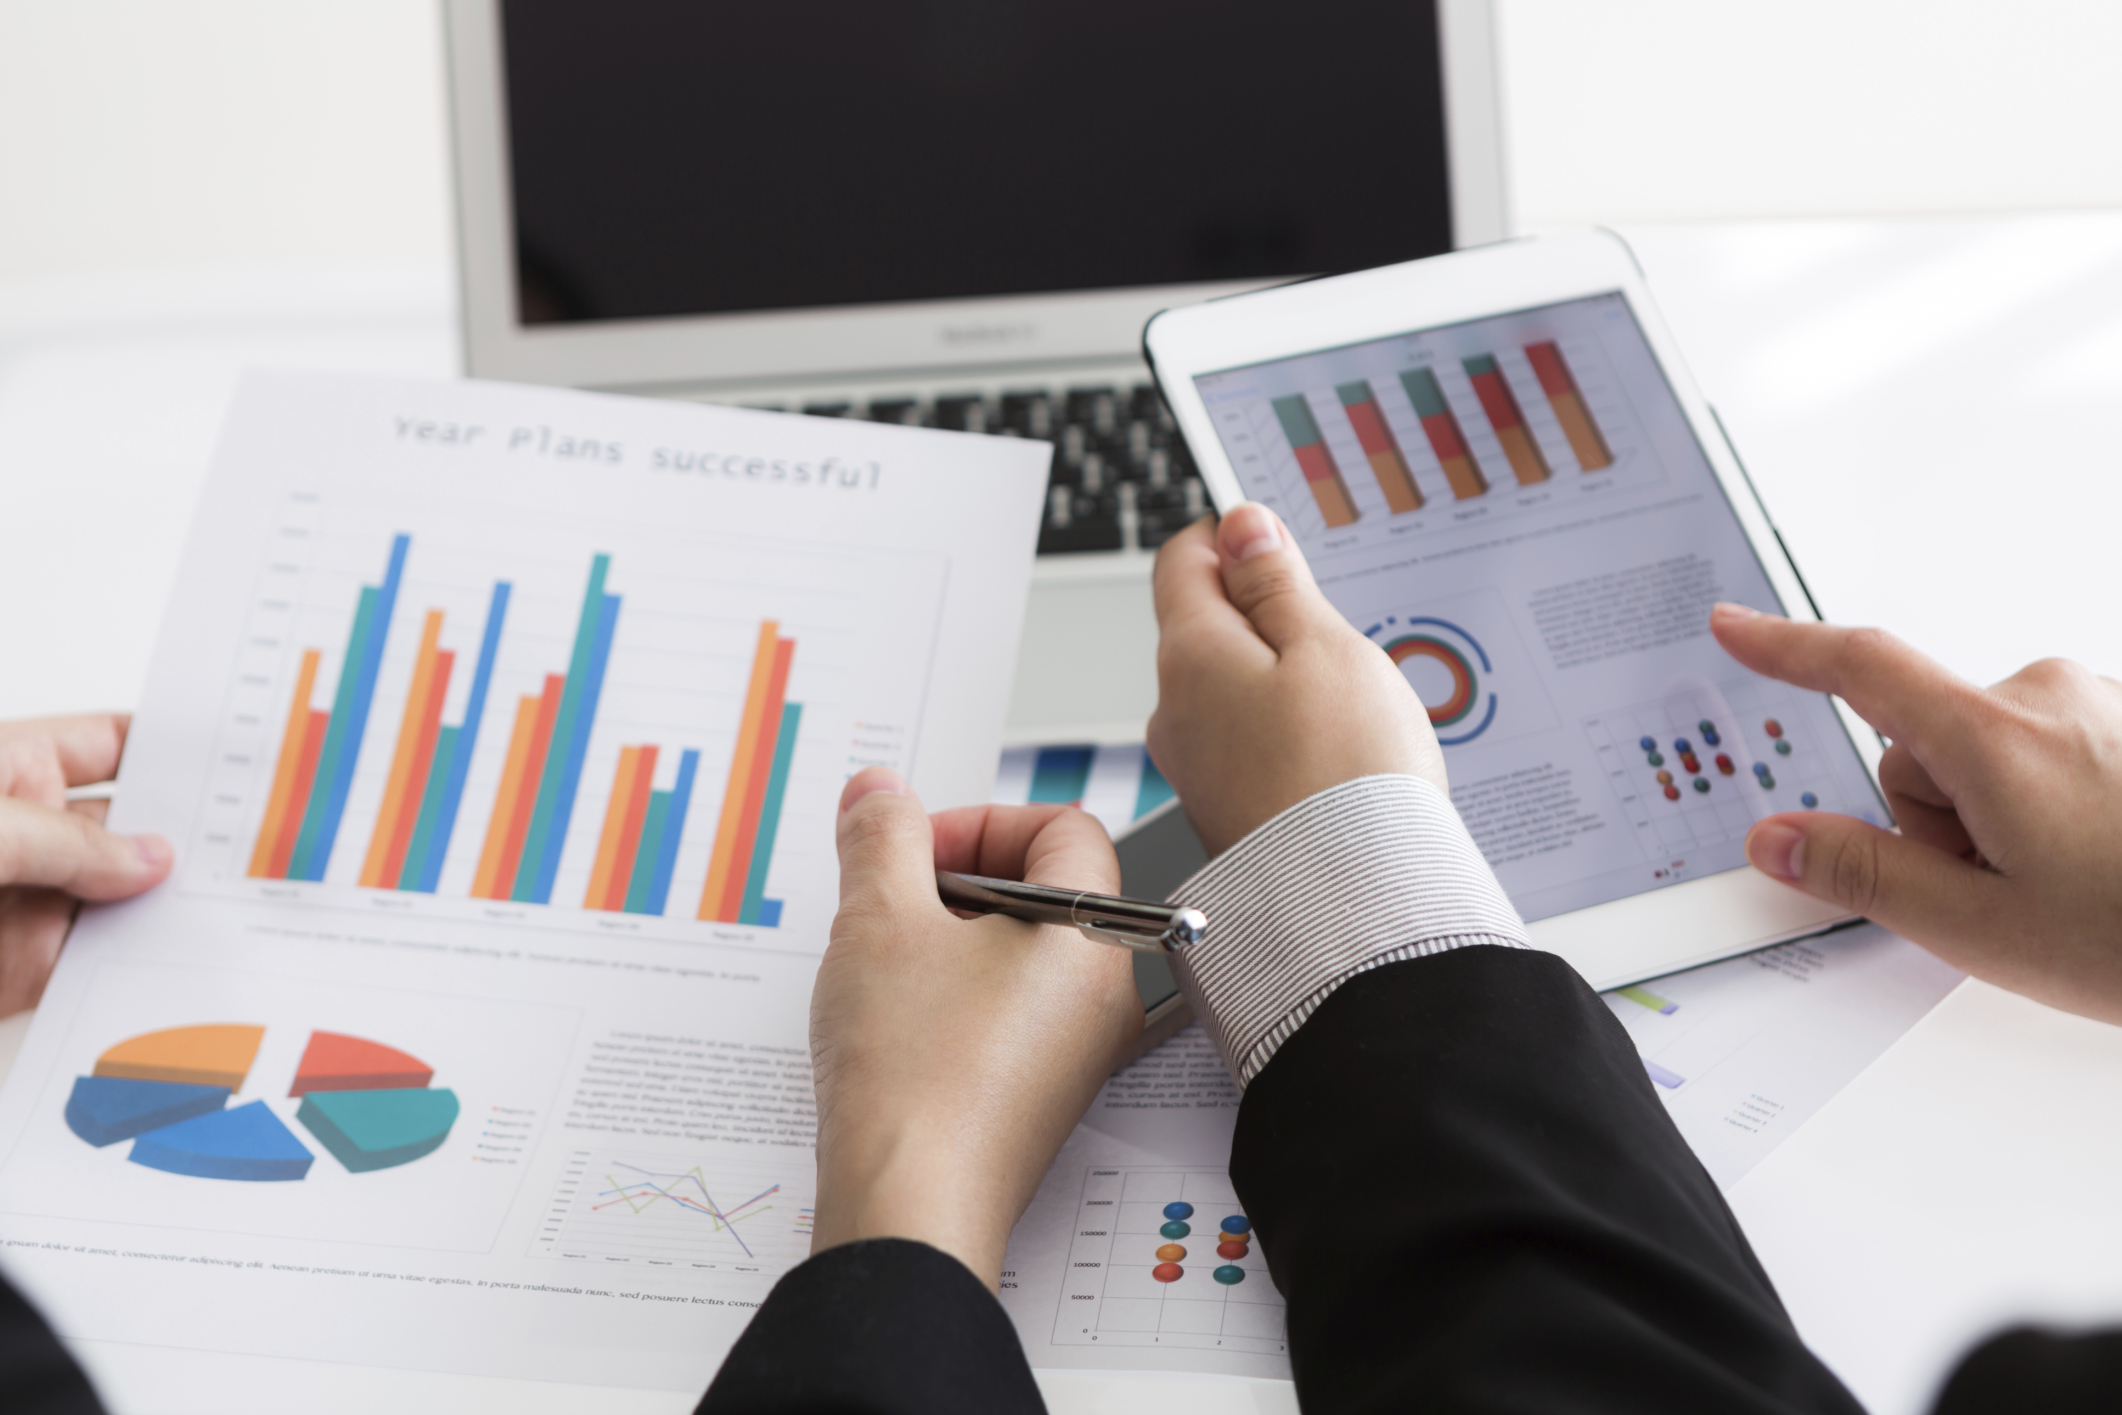 market research consumer goods Market research: the consumer goods sector spans thousands of brands over hundreds of companies and over several different industries the following research covers three of the most recognizable names in the sector proctor & gamble, pepsico and mattel.